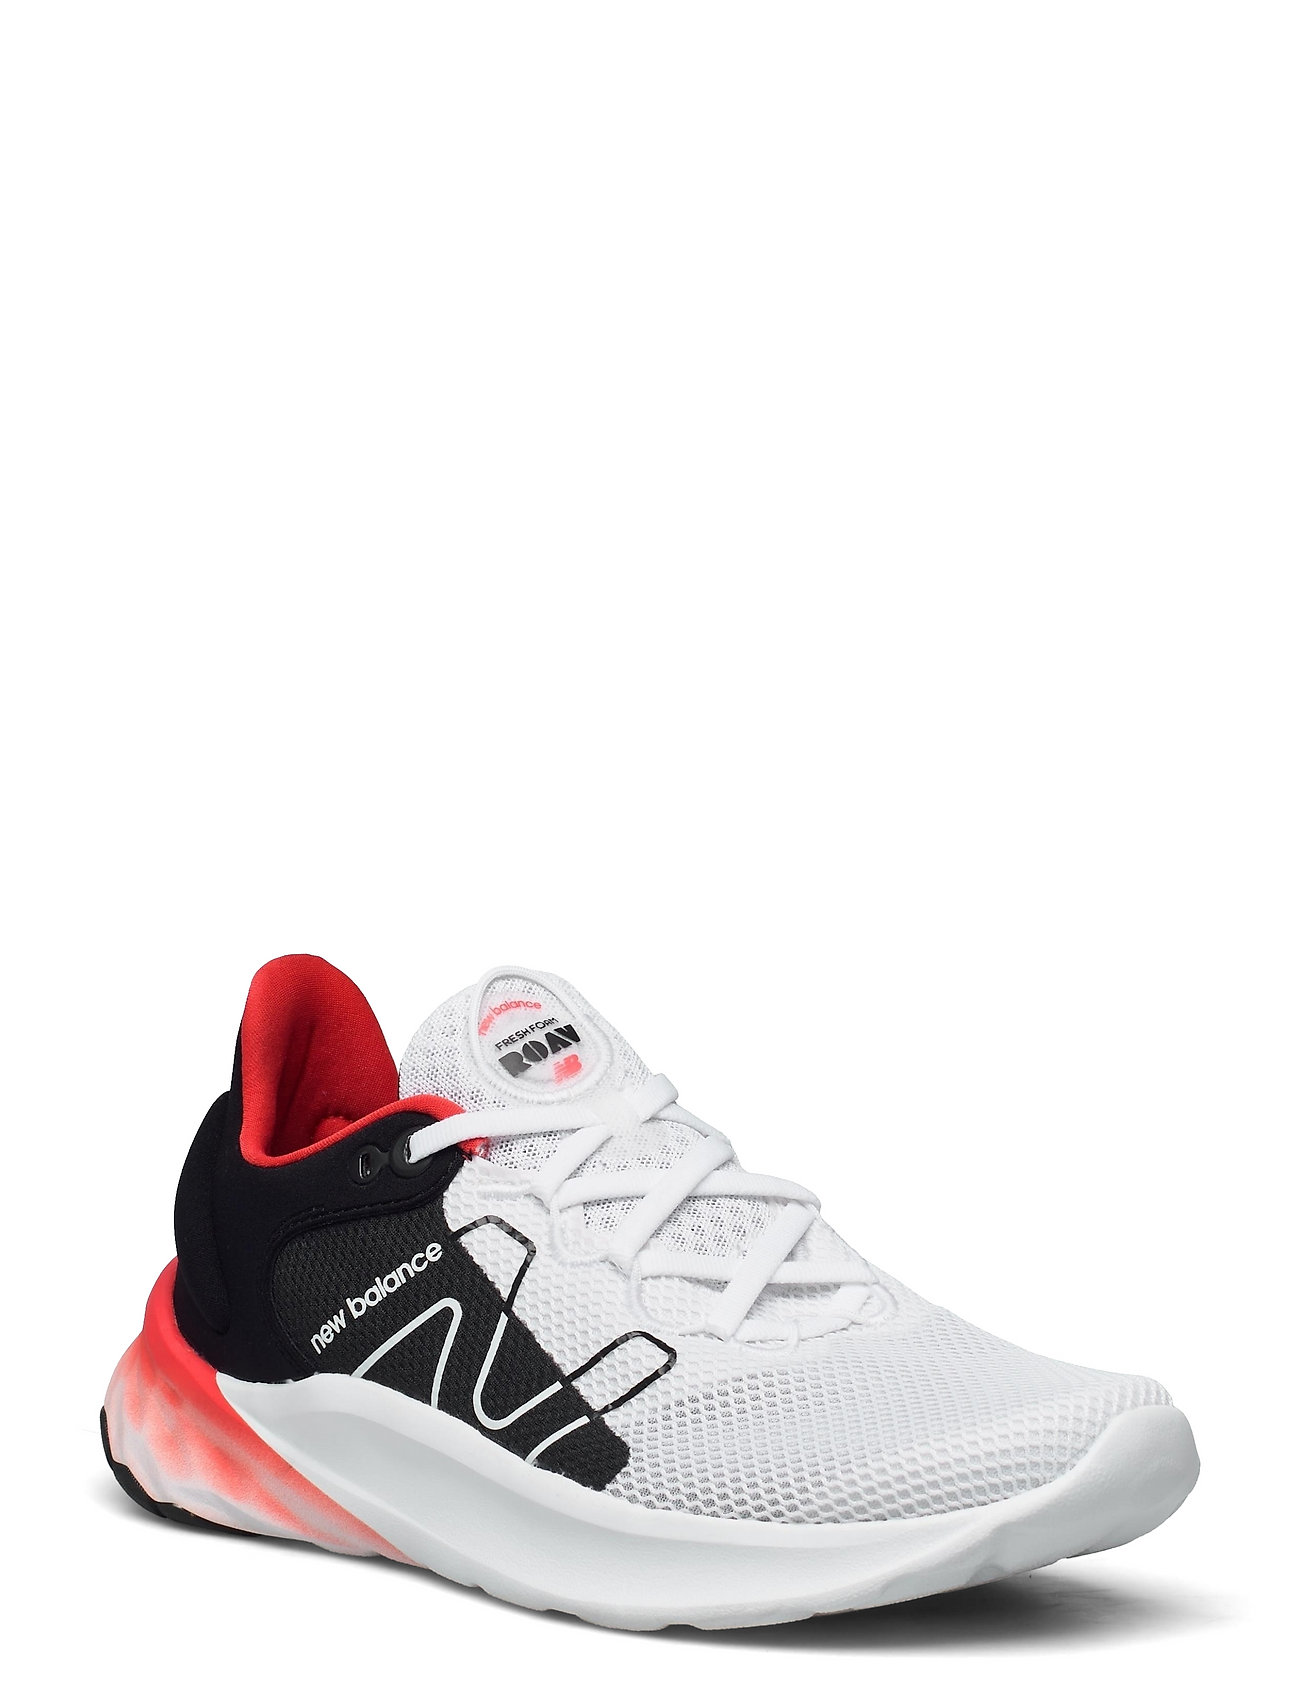 Mroavsw2 Shoes Sport Shoes Running Shoes Hvid New Balance